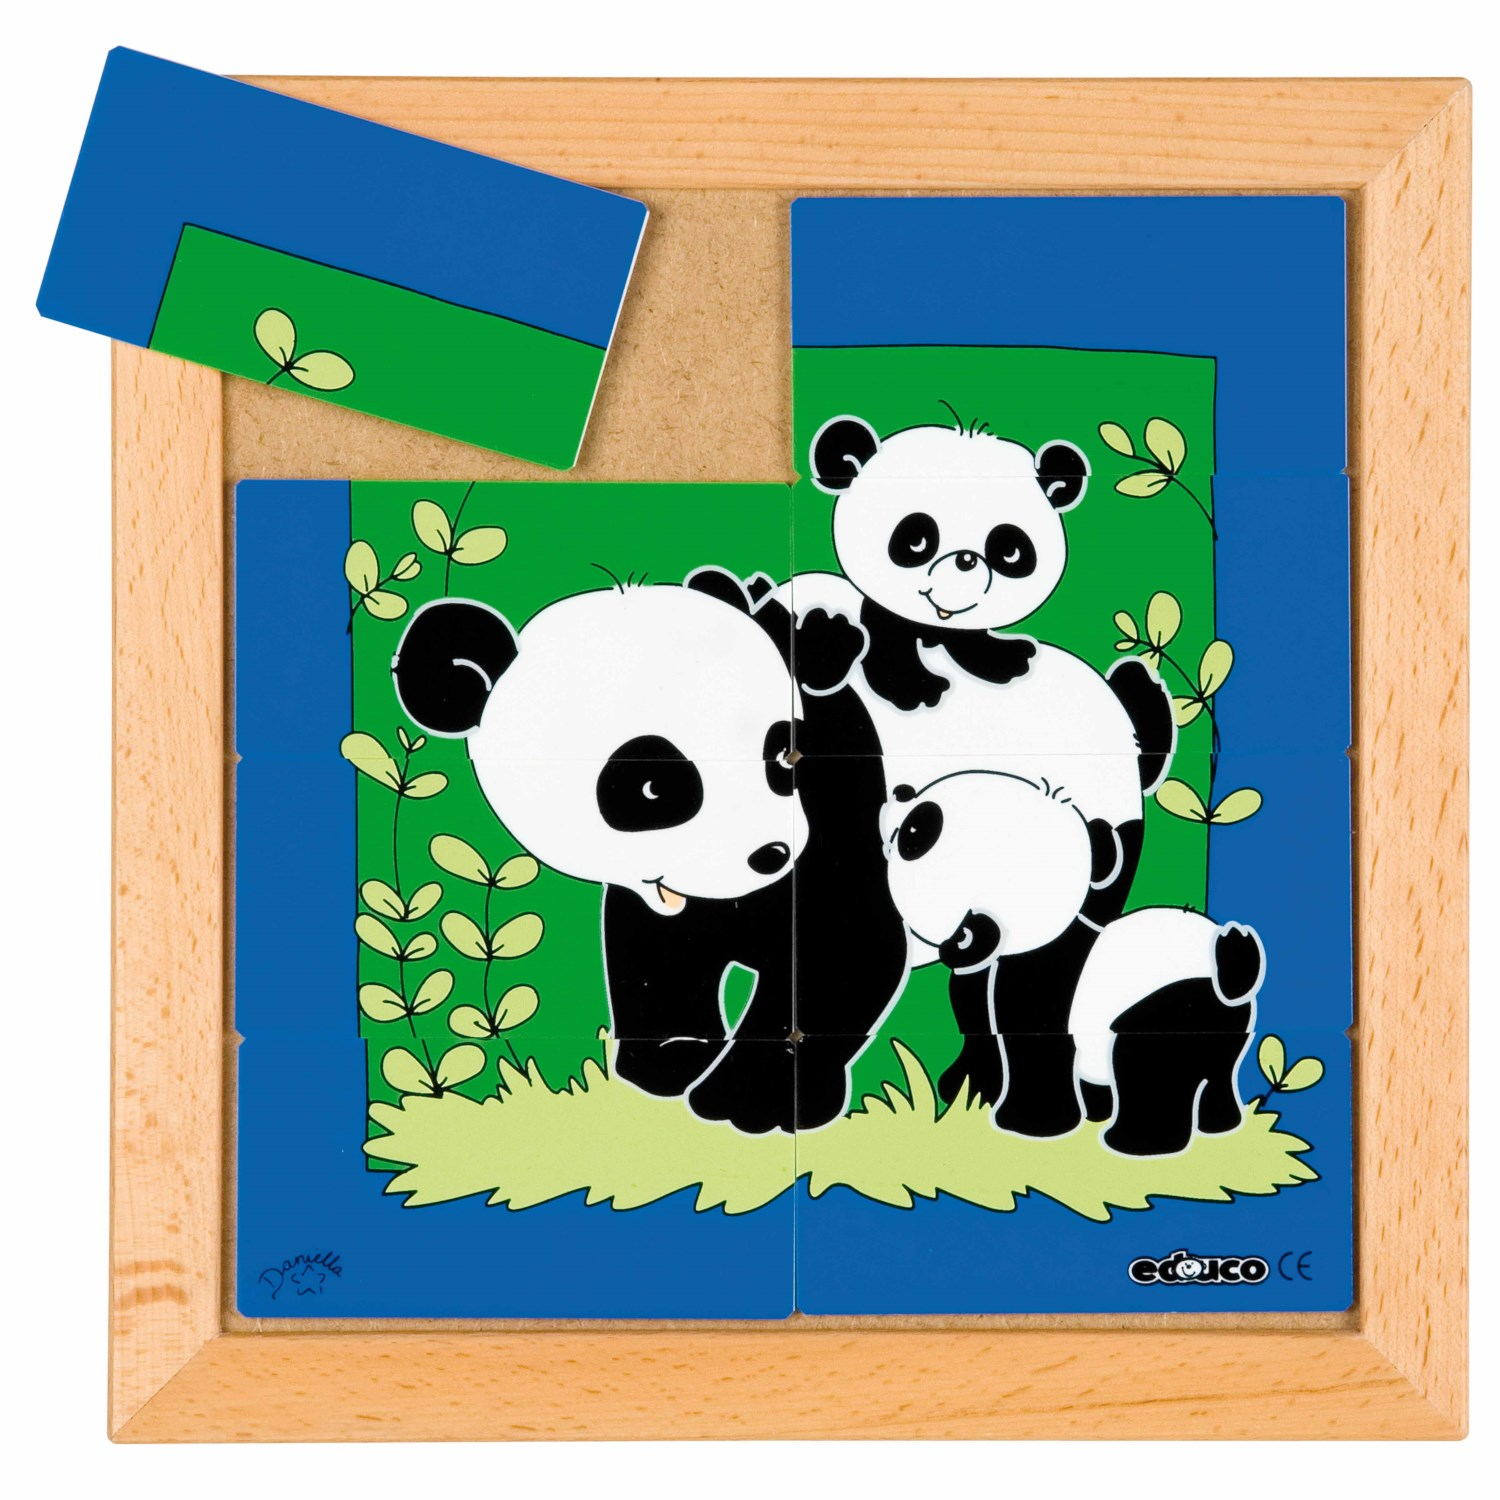 Animal puzzle mother + child - panda - Educo